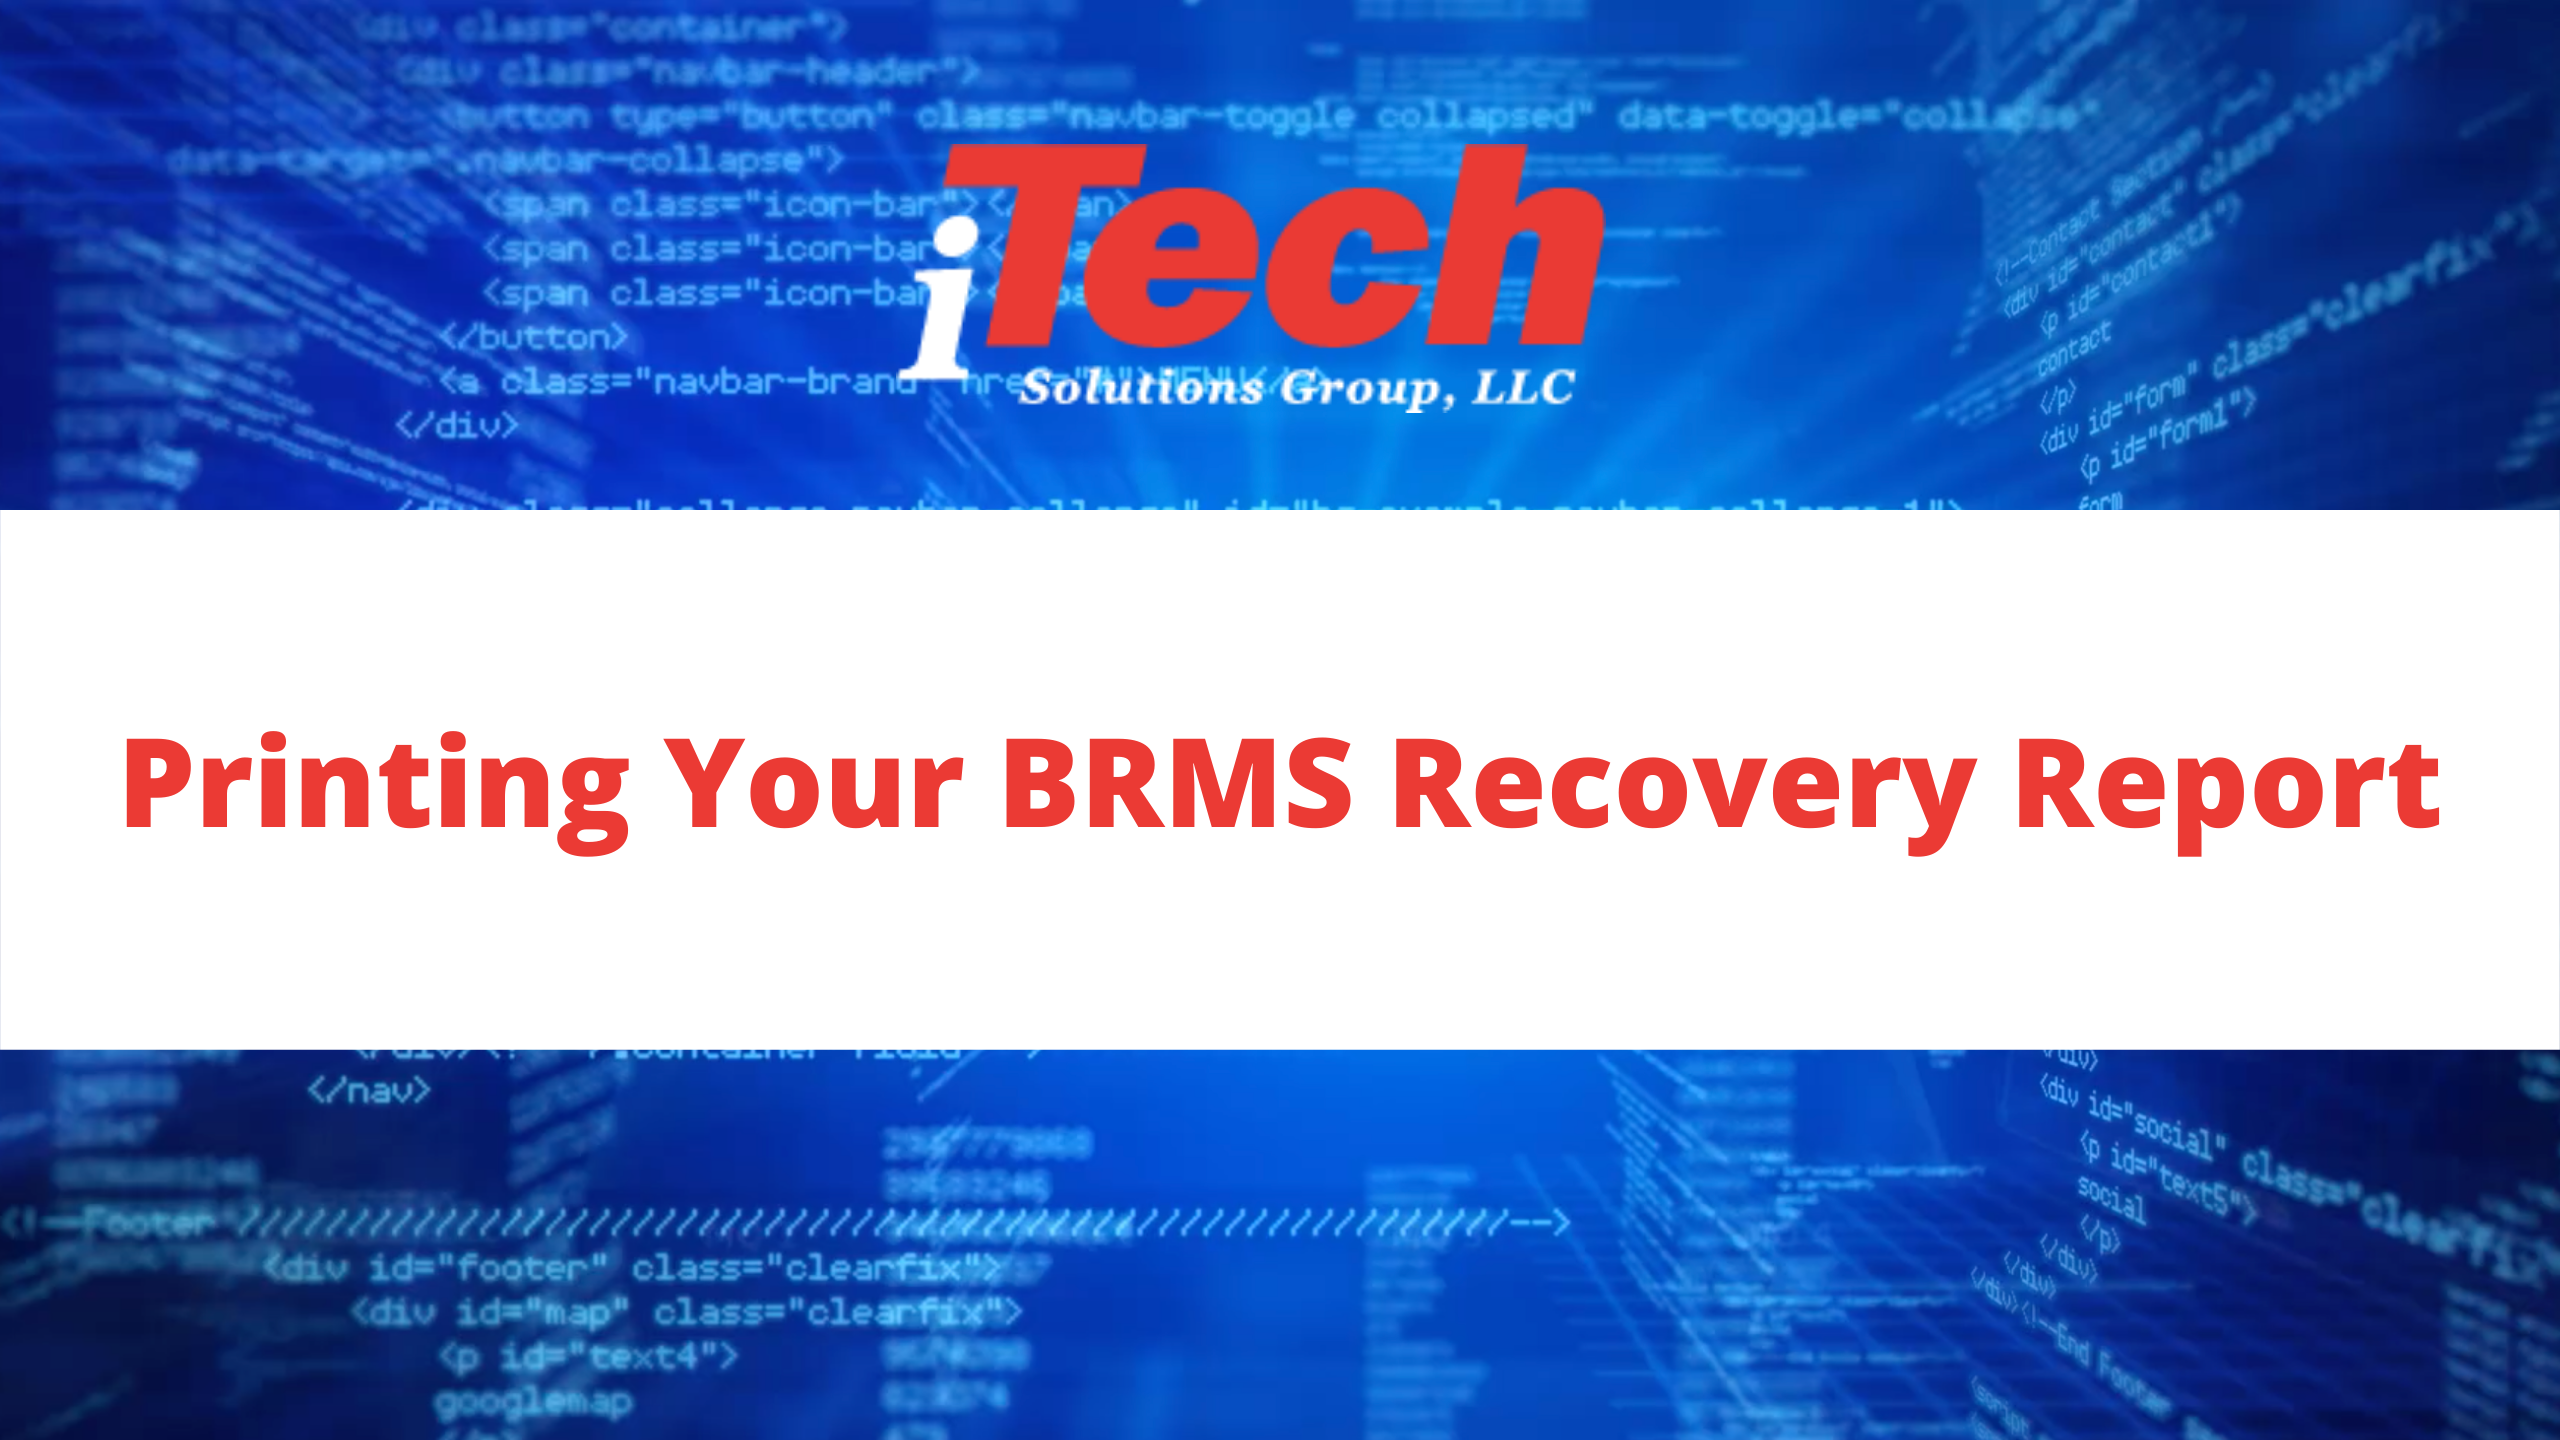 Printing Your BRMS Recovery Report (1)